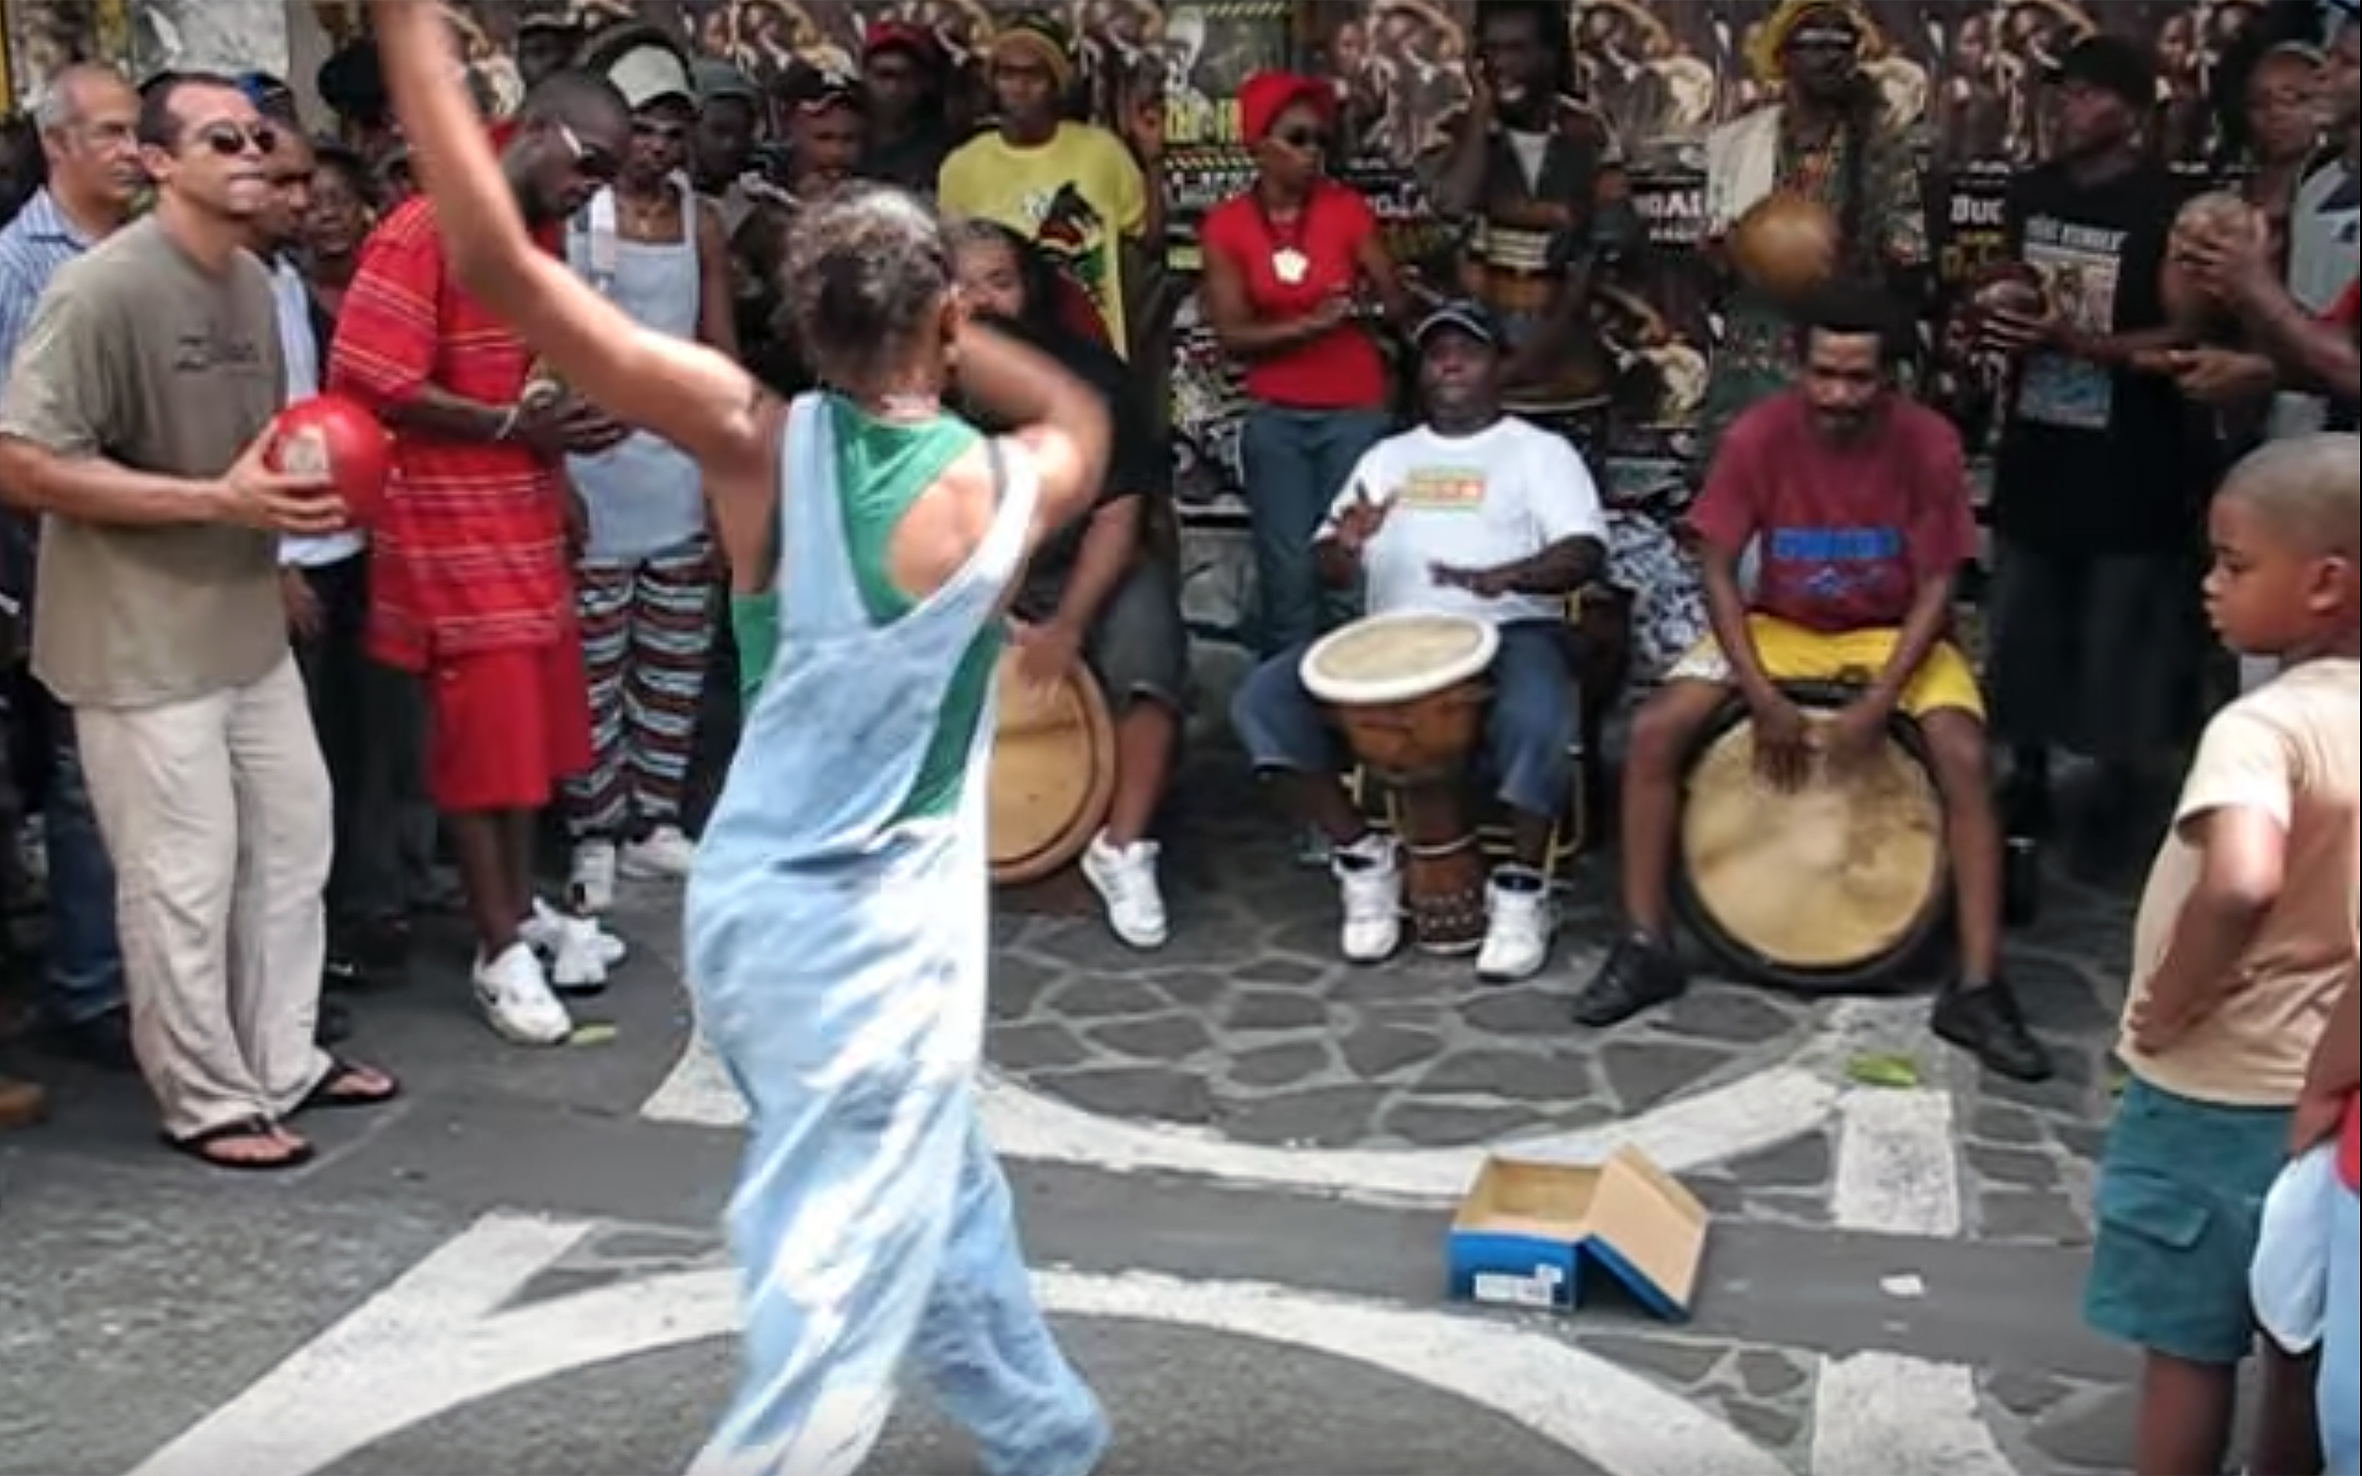 356.GWOKA / Guadeloupe / Martinique - GWOKA is a mixture of dancing, singing and playing music. Created by slaves from Africa to Guadeloupe, it was a form of political claim where the singing was based on question-answer song. Dancers and musicians together form a circle where one person is dancing in the middle. Throughout time, it is combined with local culture and nowadays Gwoka is one the most iconic culture trait of Guadeloupe. It is a dance of improvisation, a dance of the instinct, of the moment, dance of resistance, of resilience and adaptation: Dance of Life.